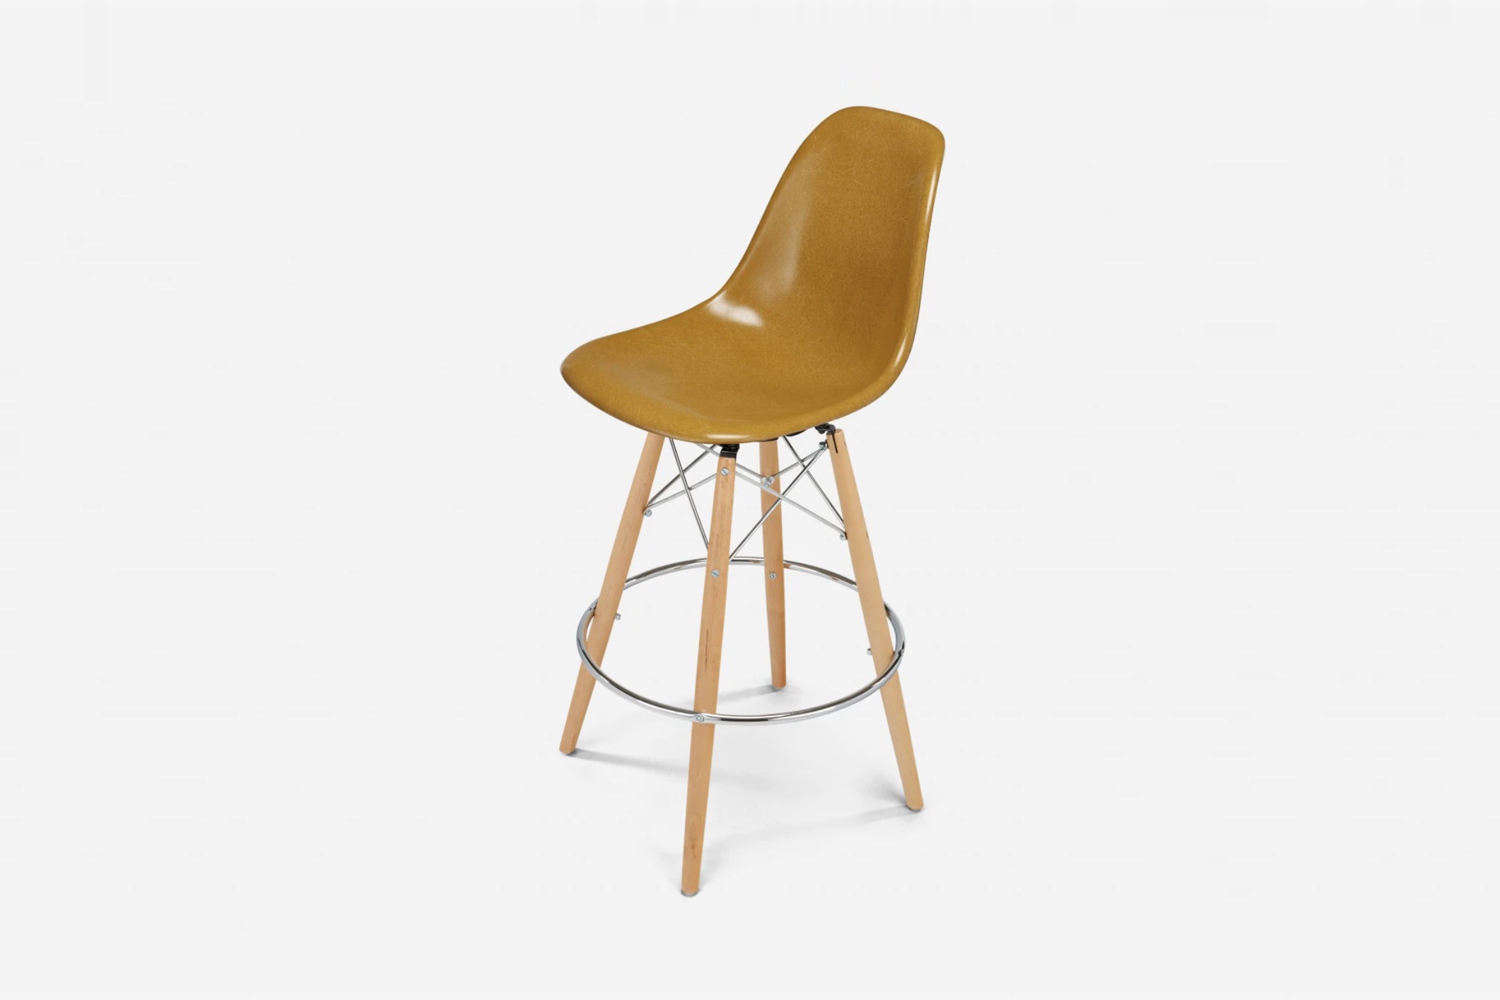 The Case Study Furniture Shell Dowel Counter Stool is $5 at Modernica.